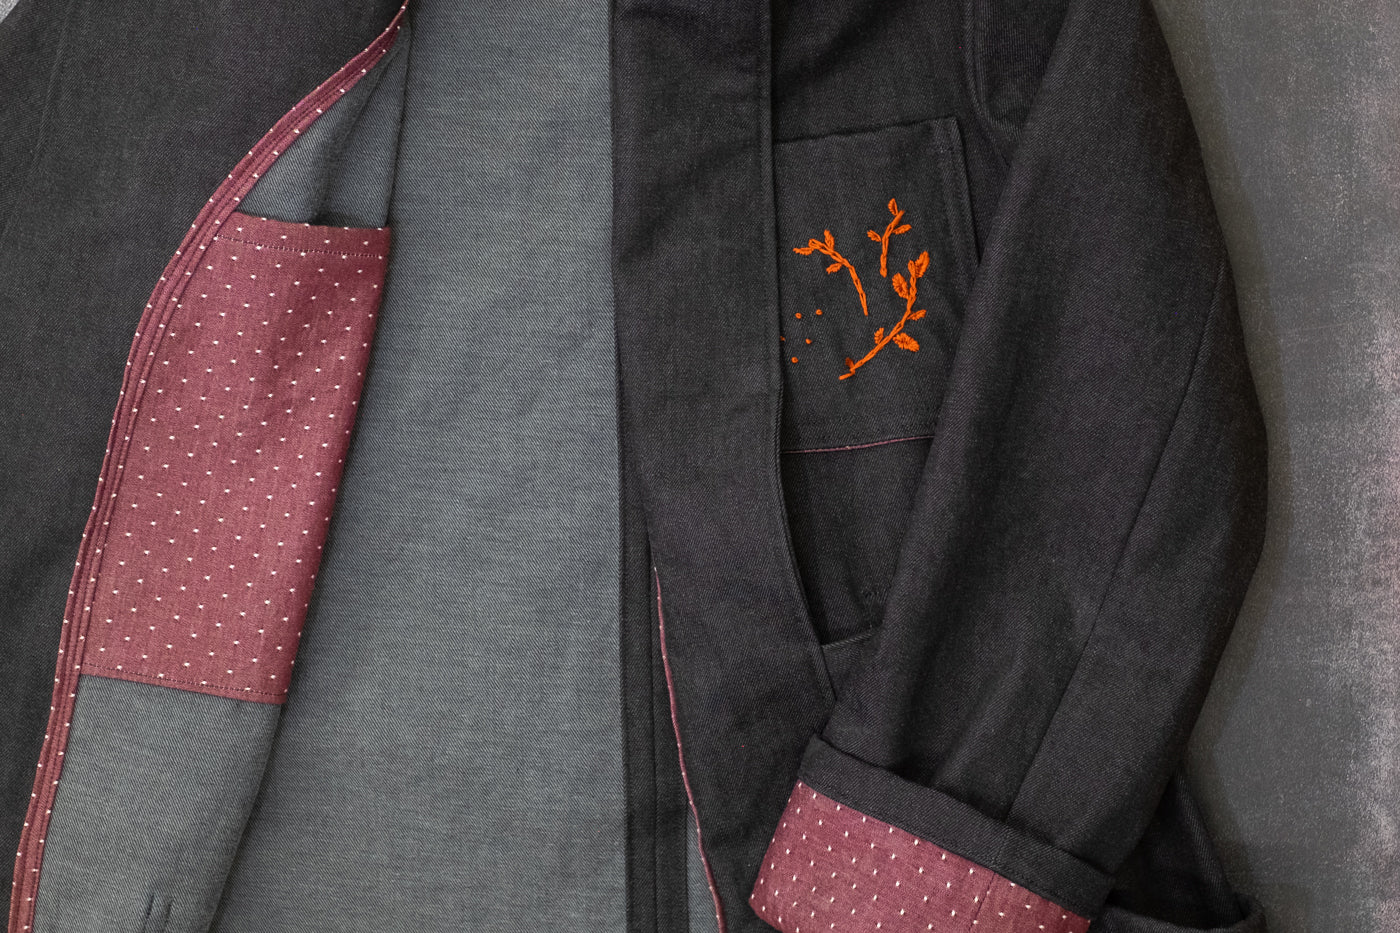 Demin Jacket laying flat showing the second fabric selection in a light maroon for the inside pocket, cuff and an orange detail on the outside pocket.